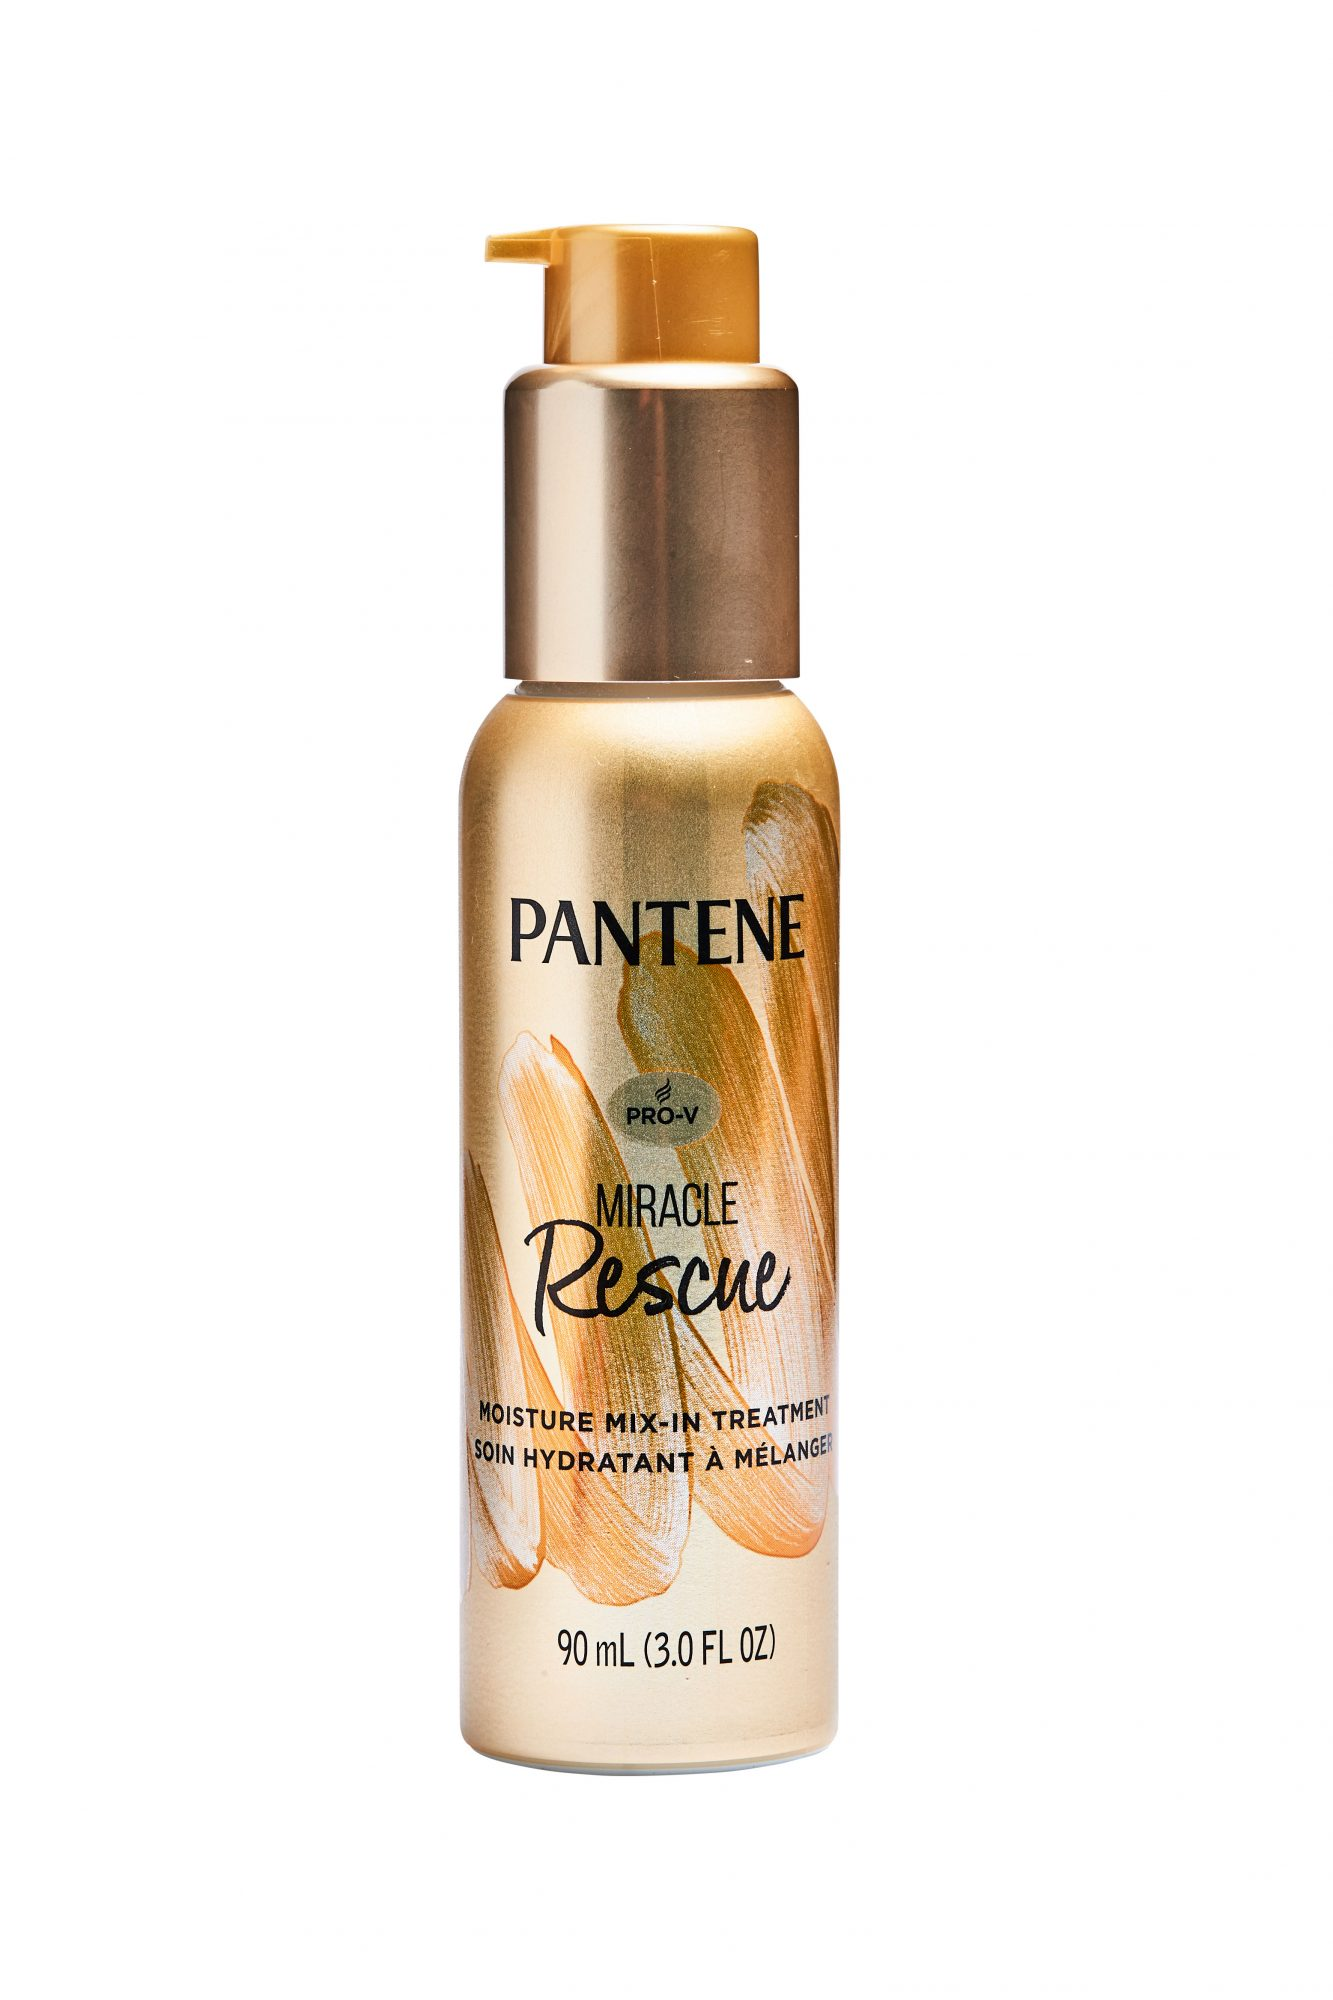 Pantene Miracle Rescue Moisture Mix-In Treatment